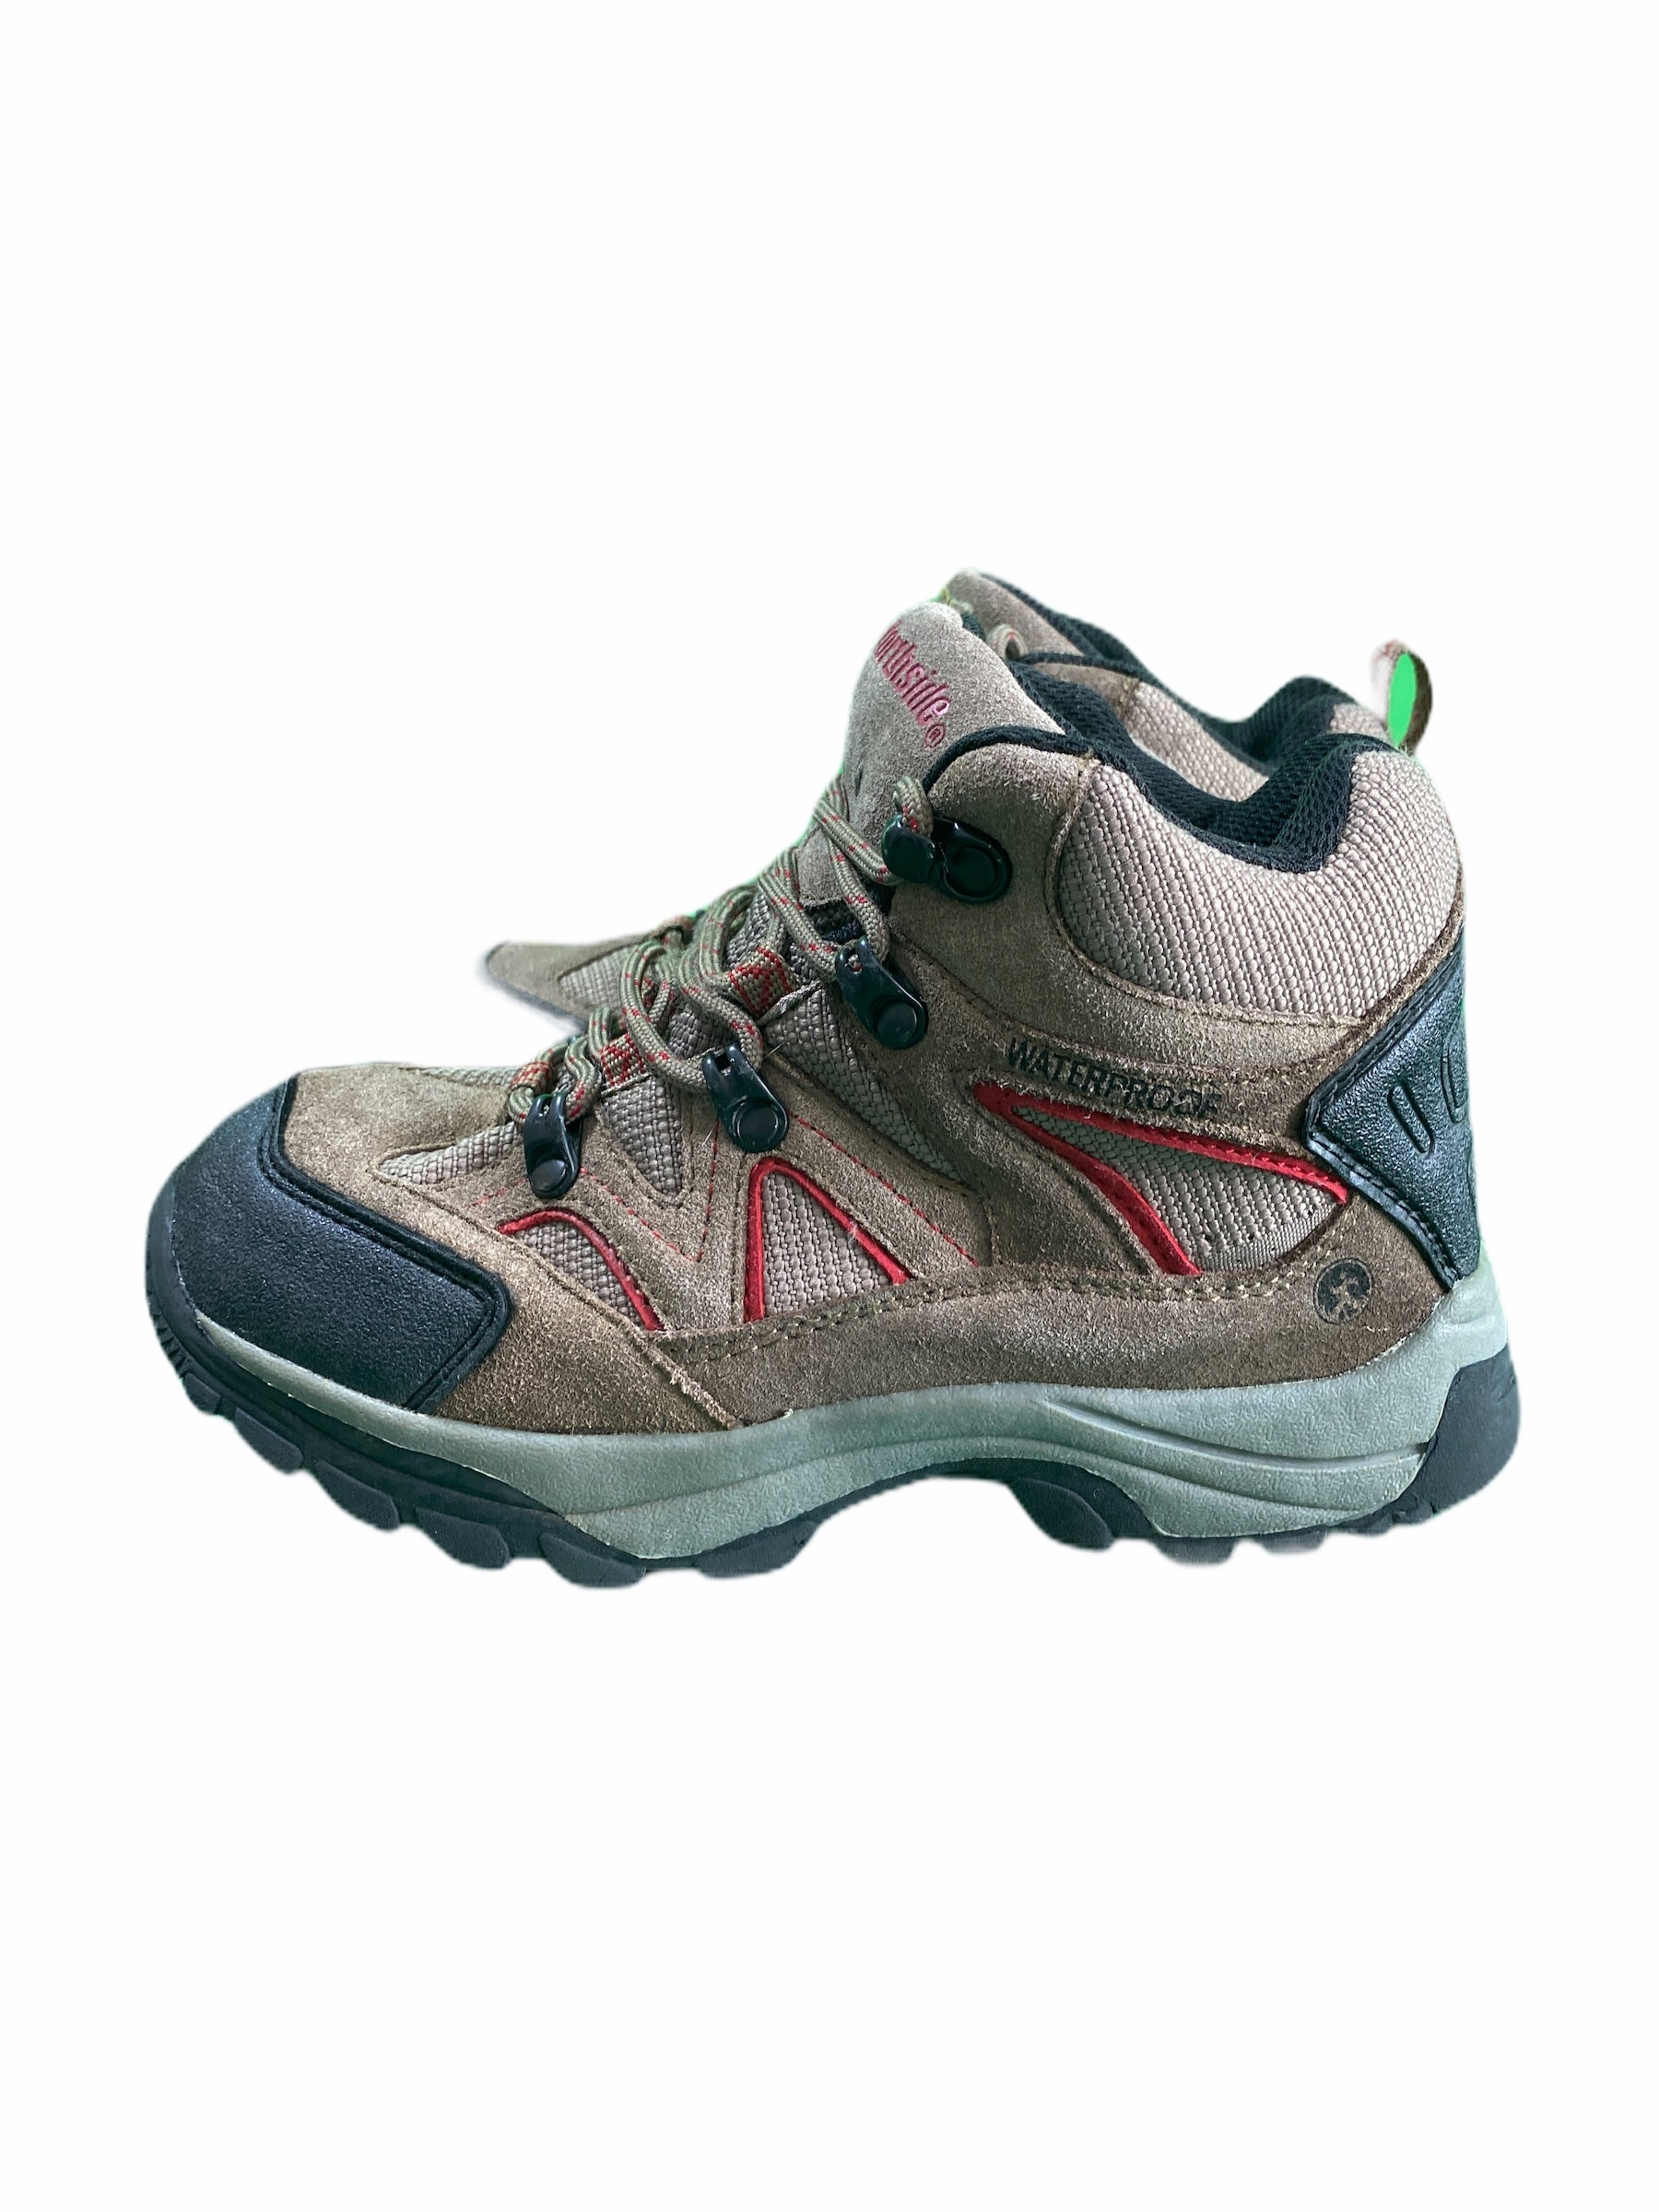 Northside Brown Hiking Boots (Size 5Y)